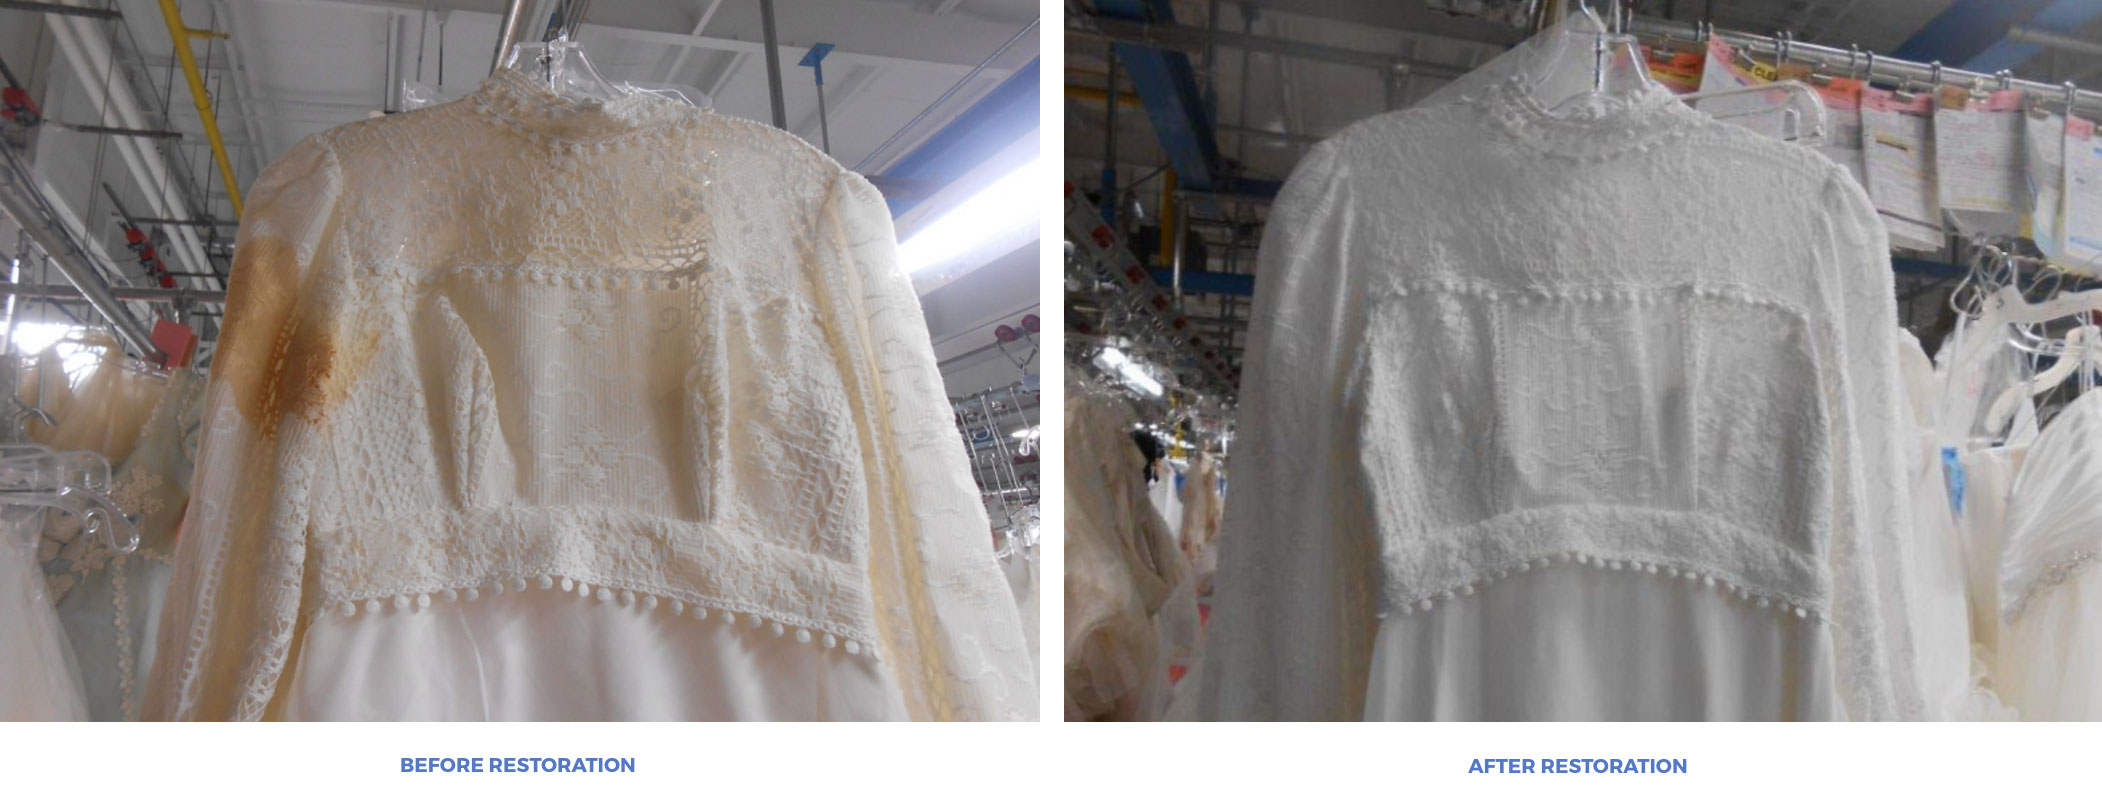 Wedding Dress Restoration | Affordable Preservation Company